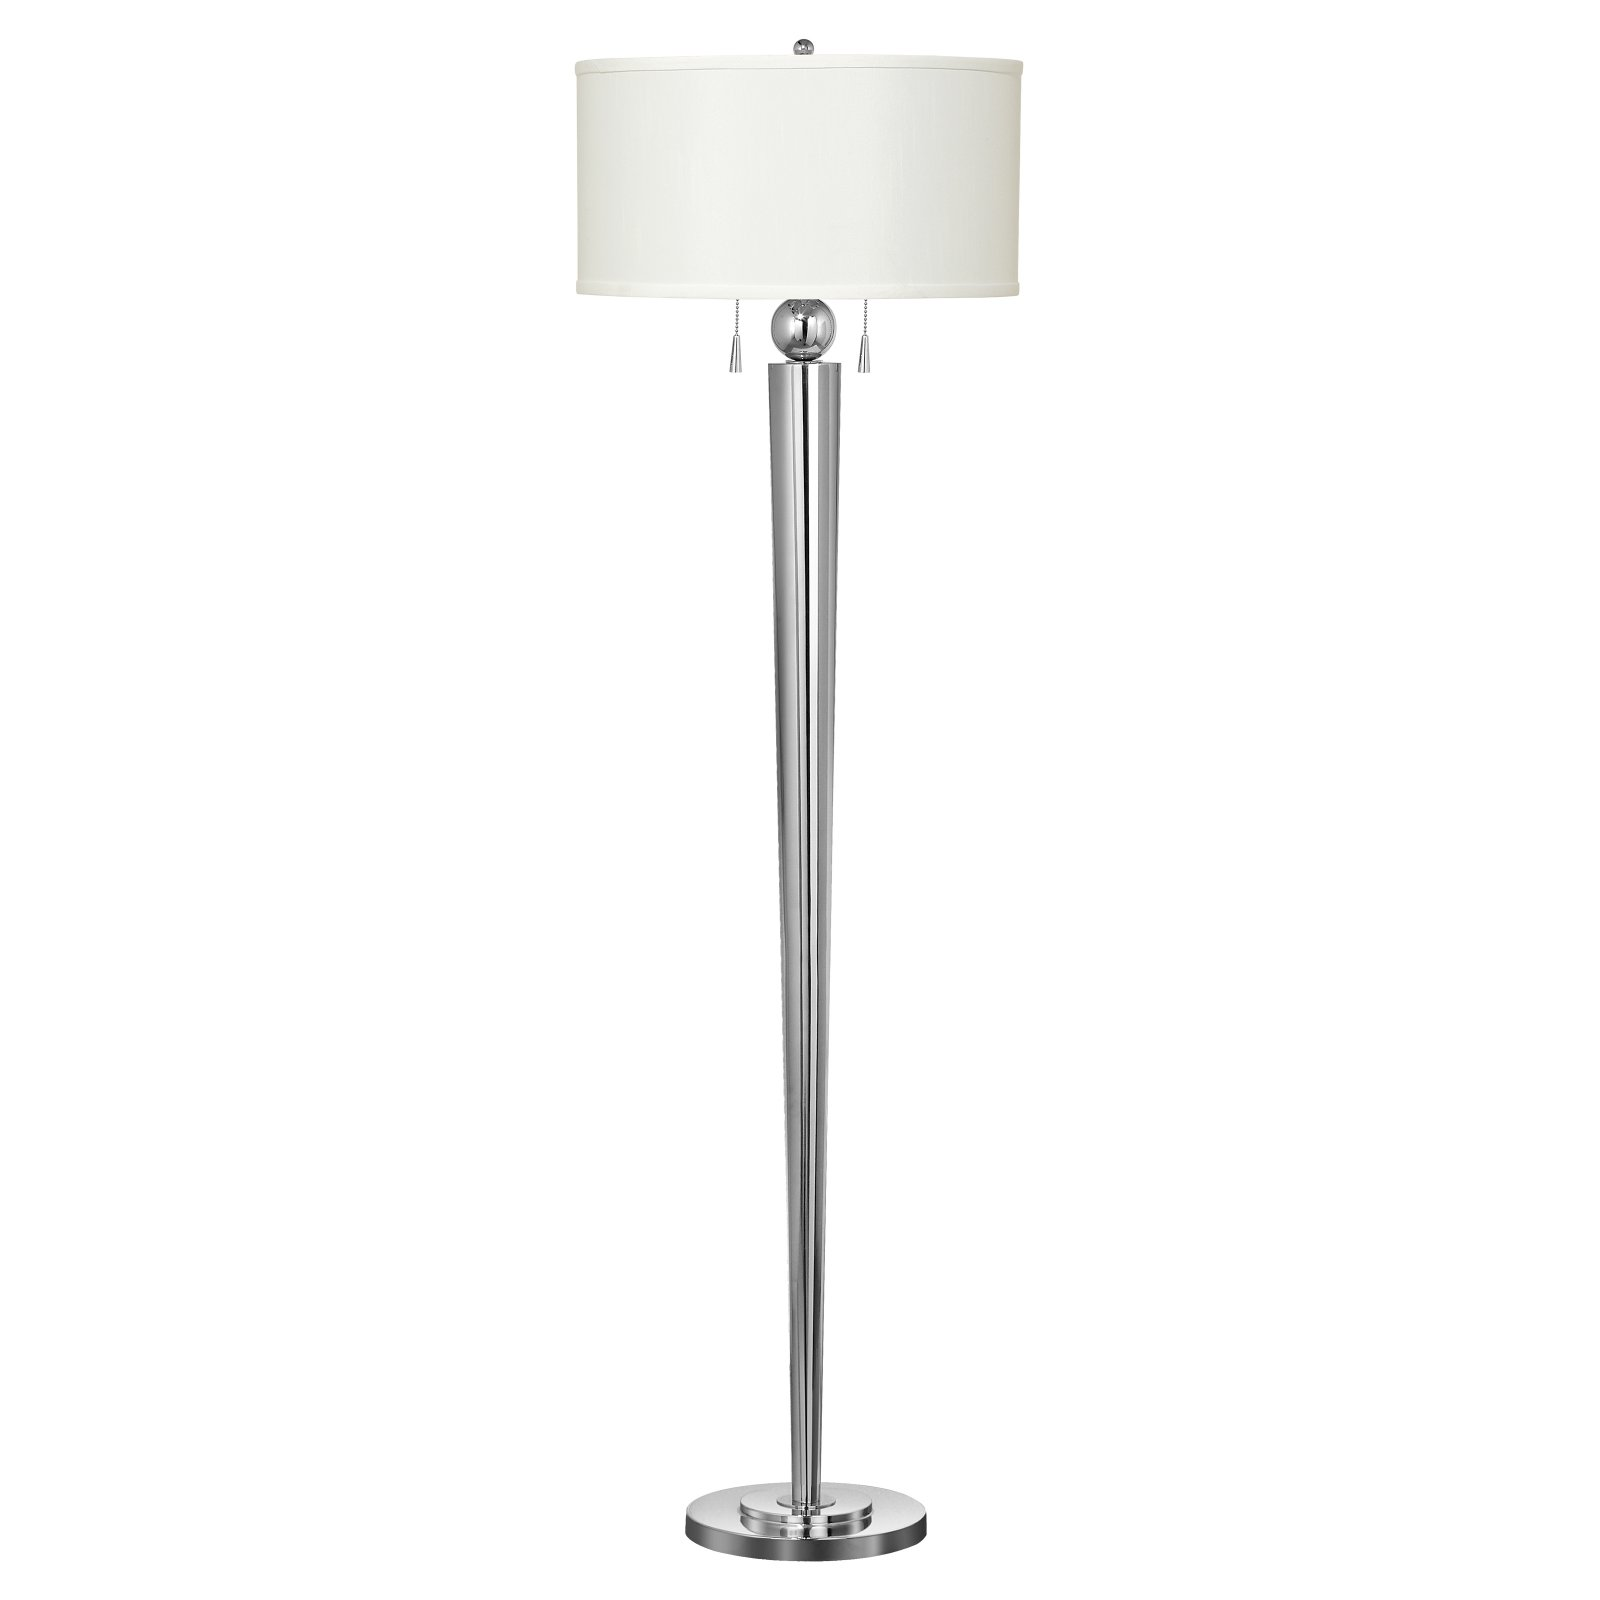 Cal Lighting BO-2007FL Messina Metal Floor Lamp with Pull Chain Switch by CAL Lighting